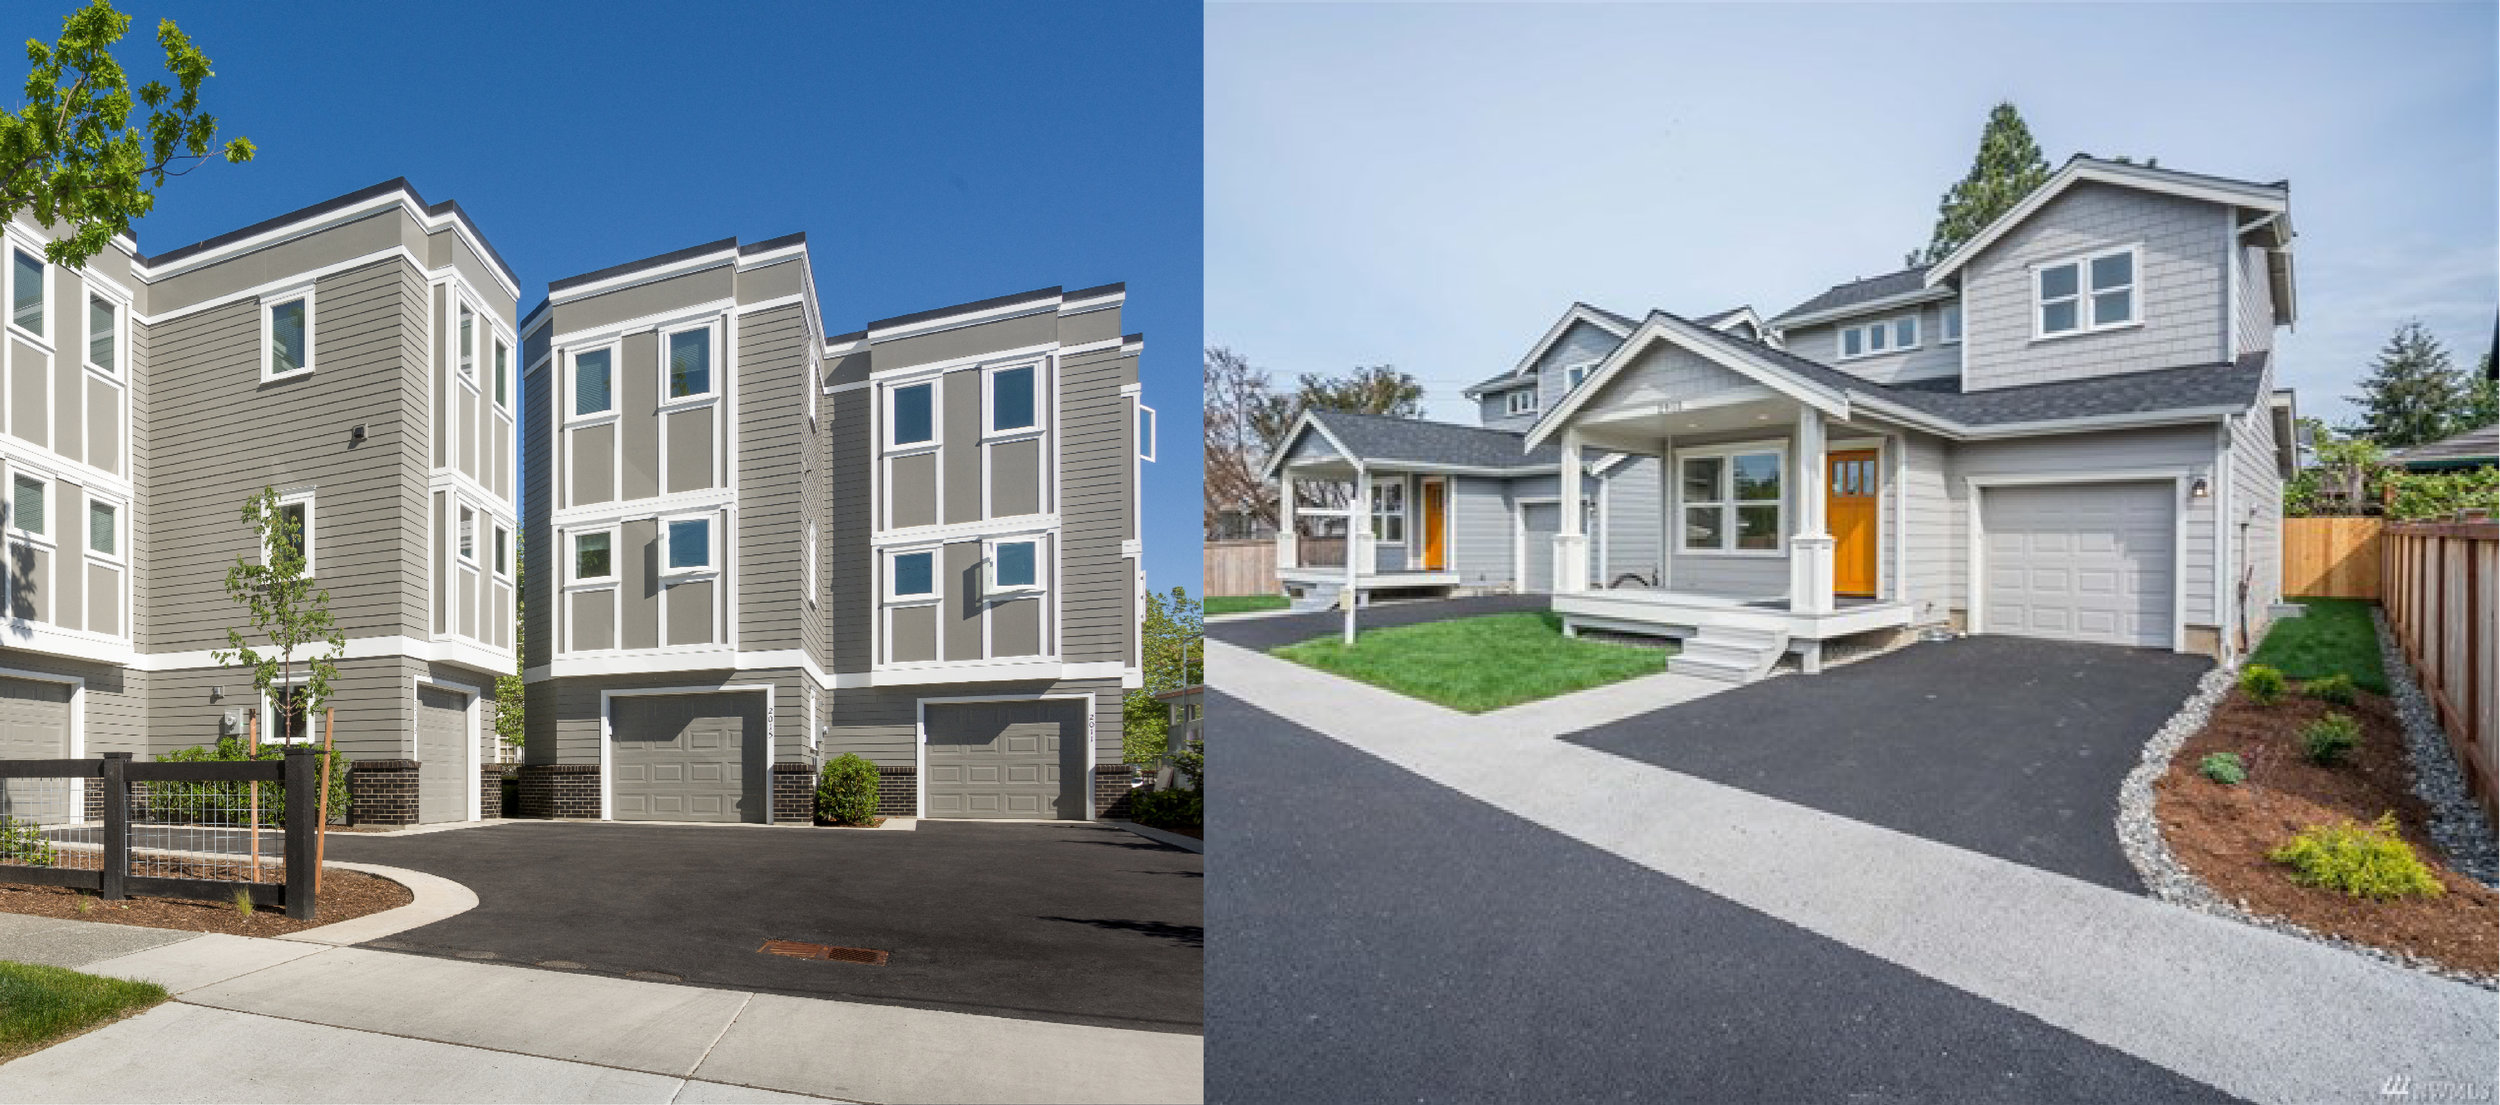 Pride in building… - Volonta Corporation is committed to quality building, with an emphasis on in-fill housing. Volonta strives to add value and beauty to Bellingham's existing neighborhoods.Volonta Corporation – pride in building.